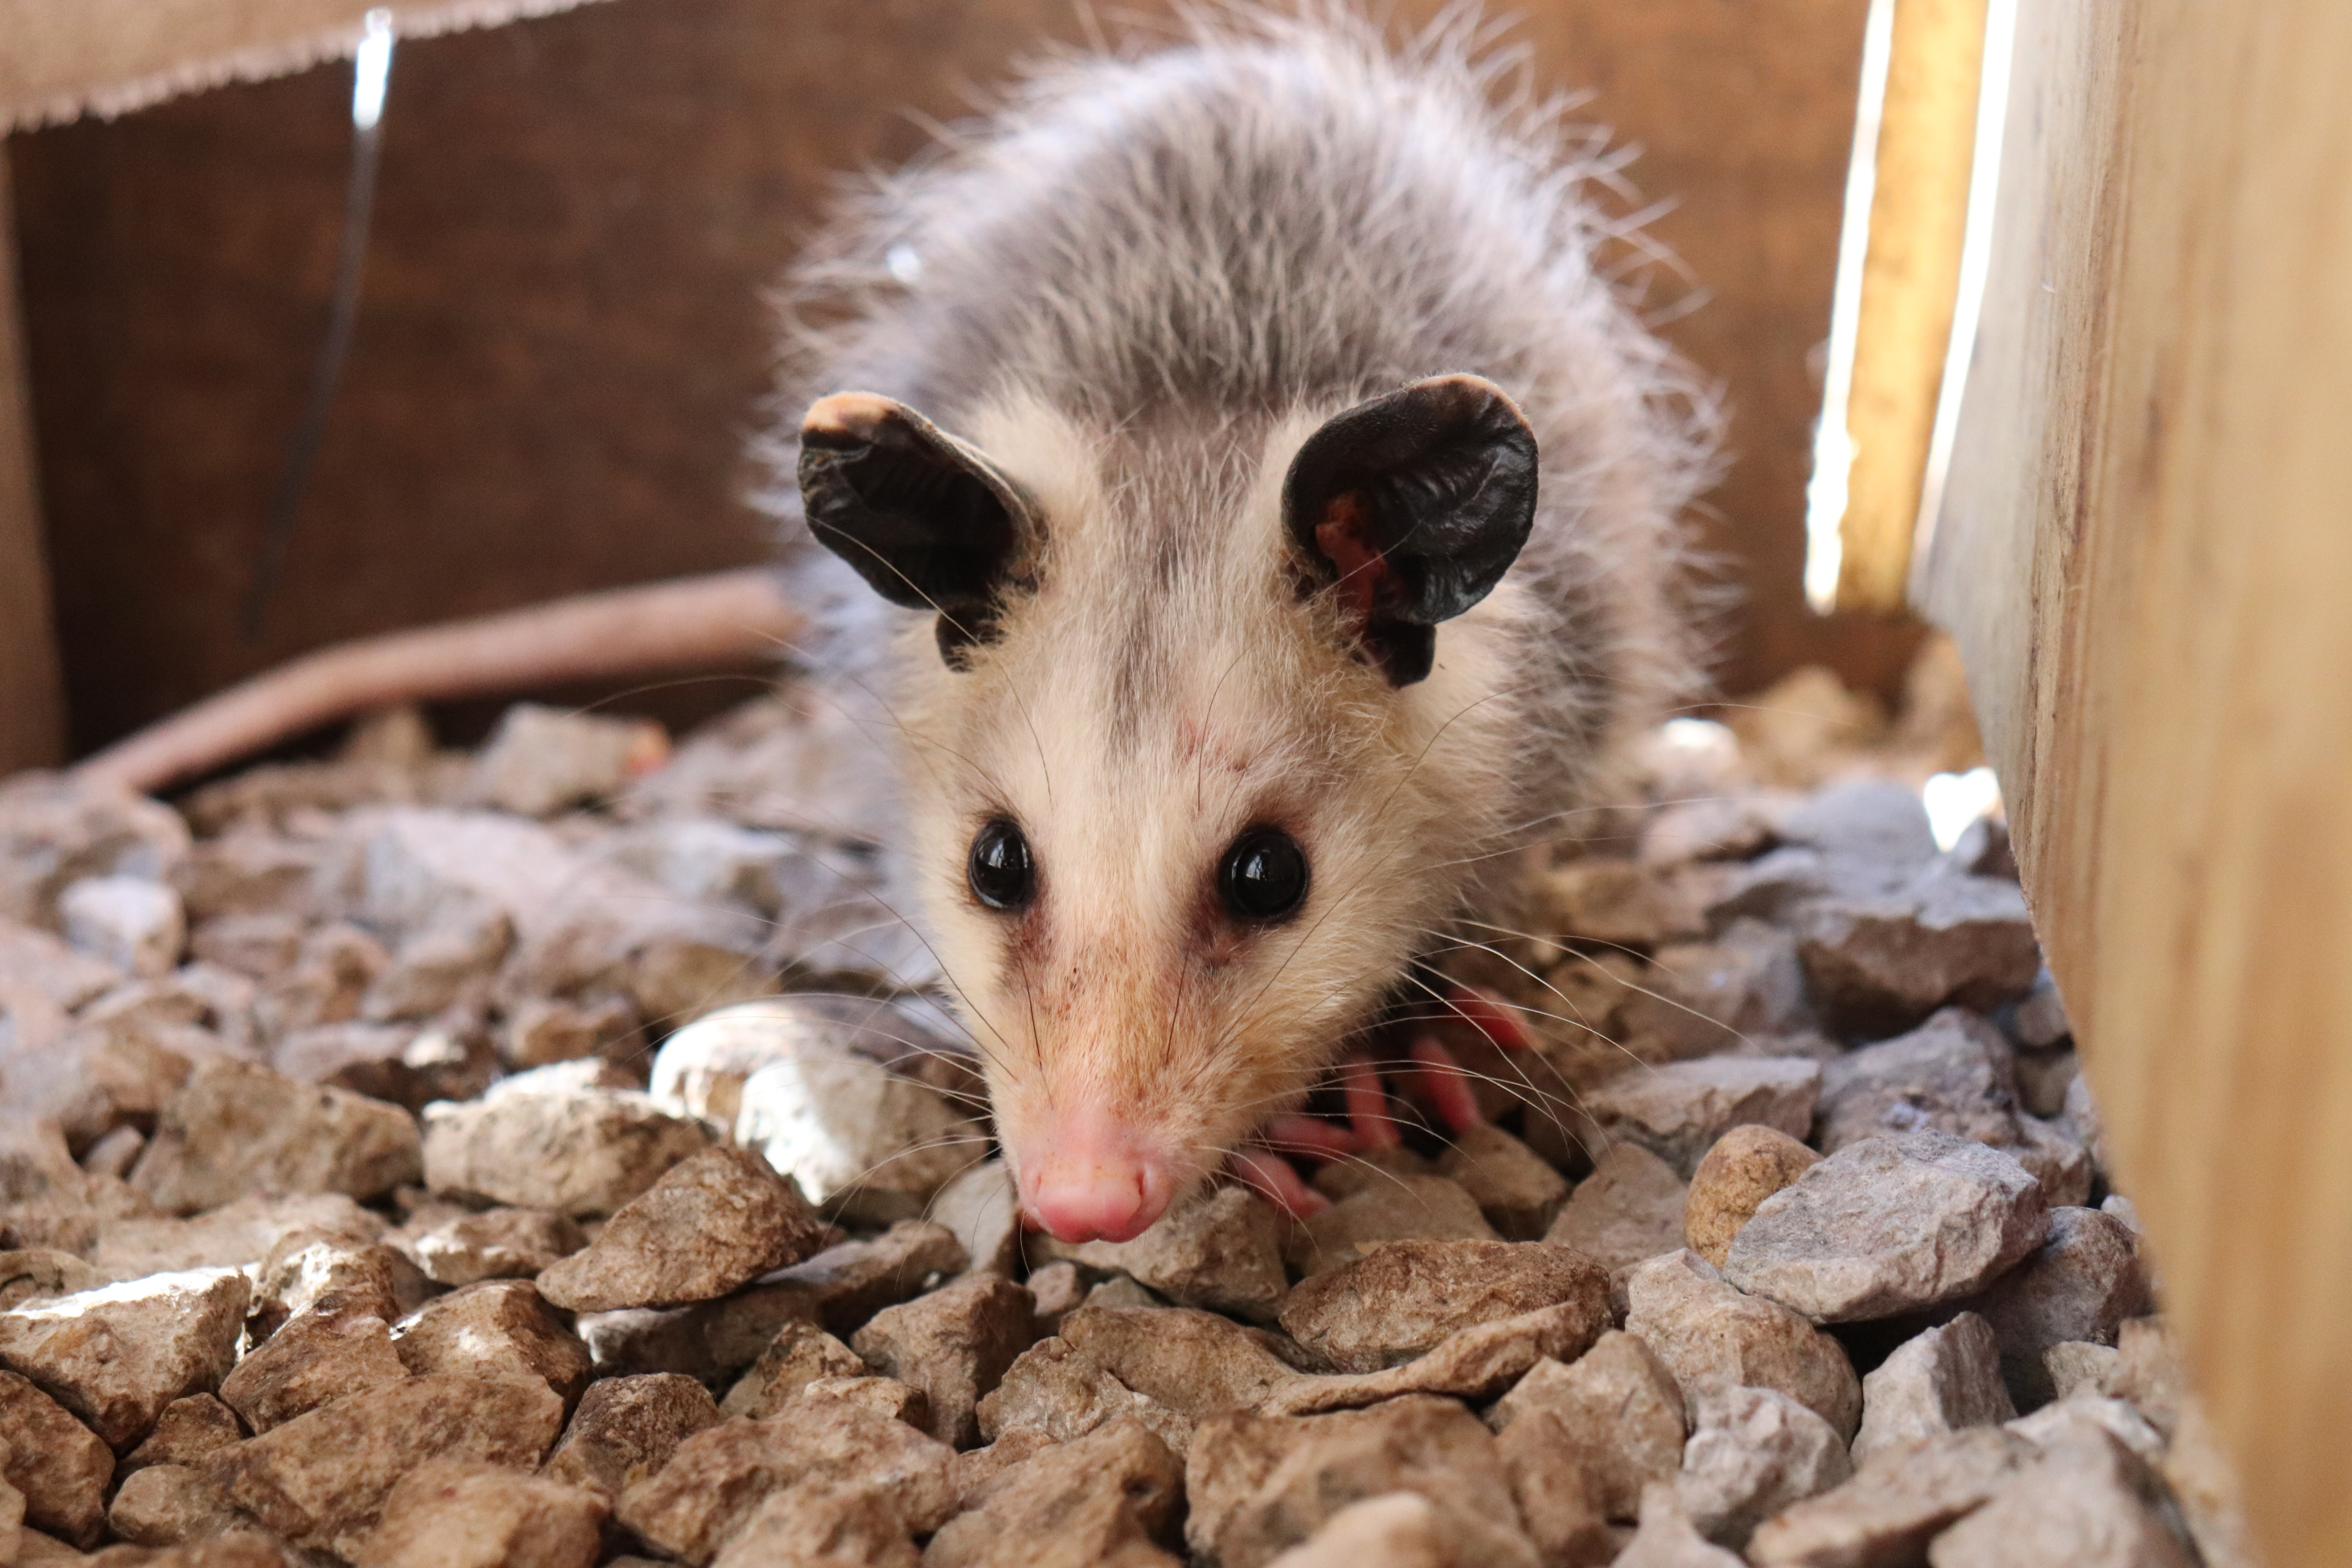 This is a stock photo of a young opossum (Didelphis virginiana), a common-urban dwelling mammal! Photo: Mikell Darling on Unsplash